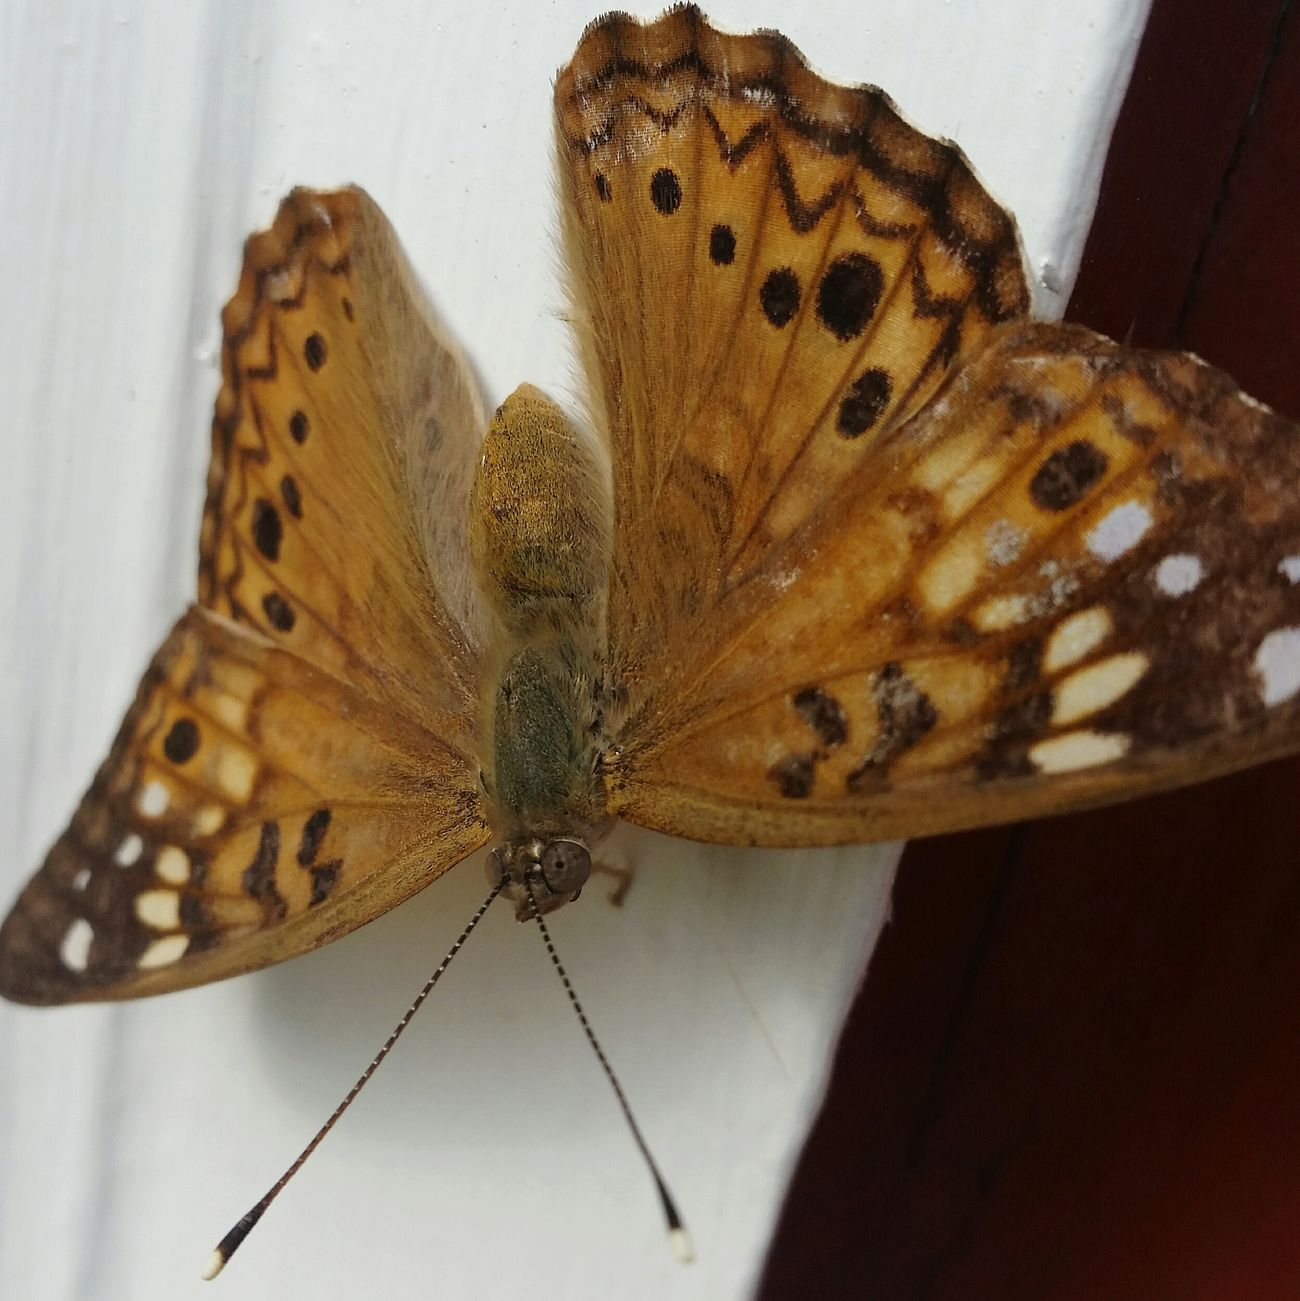 Animals In The Wild Insect Animal Themes Wildlife One Animal Butterfly - Insect Close-up Butterfly Focus On Foreground Perching Animal Wing Moth Nature Zoology Enjoying Life Happy Makesmesmile Good Life Beauty In Nature Invertebrate No People Animal Markings